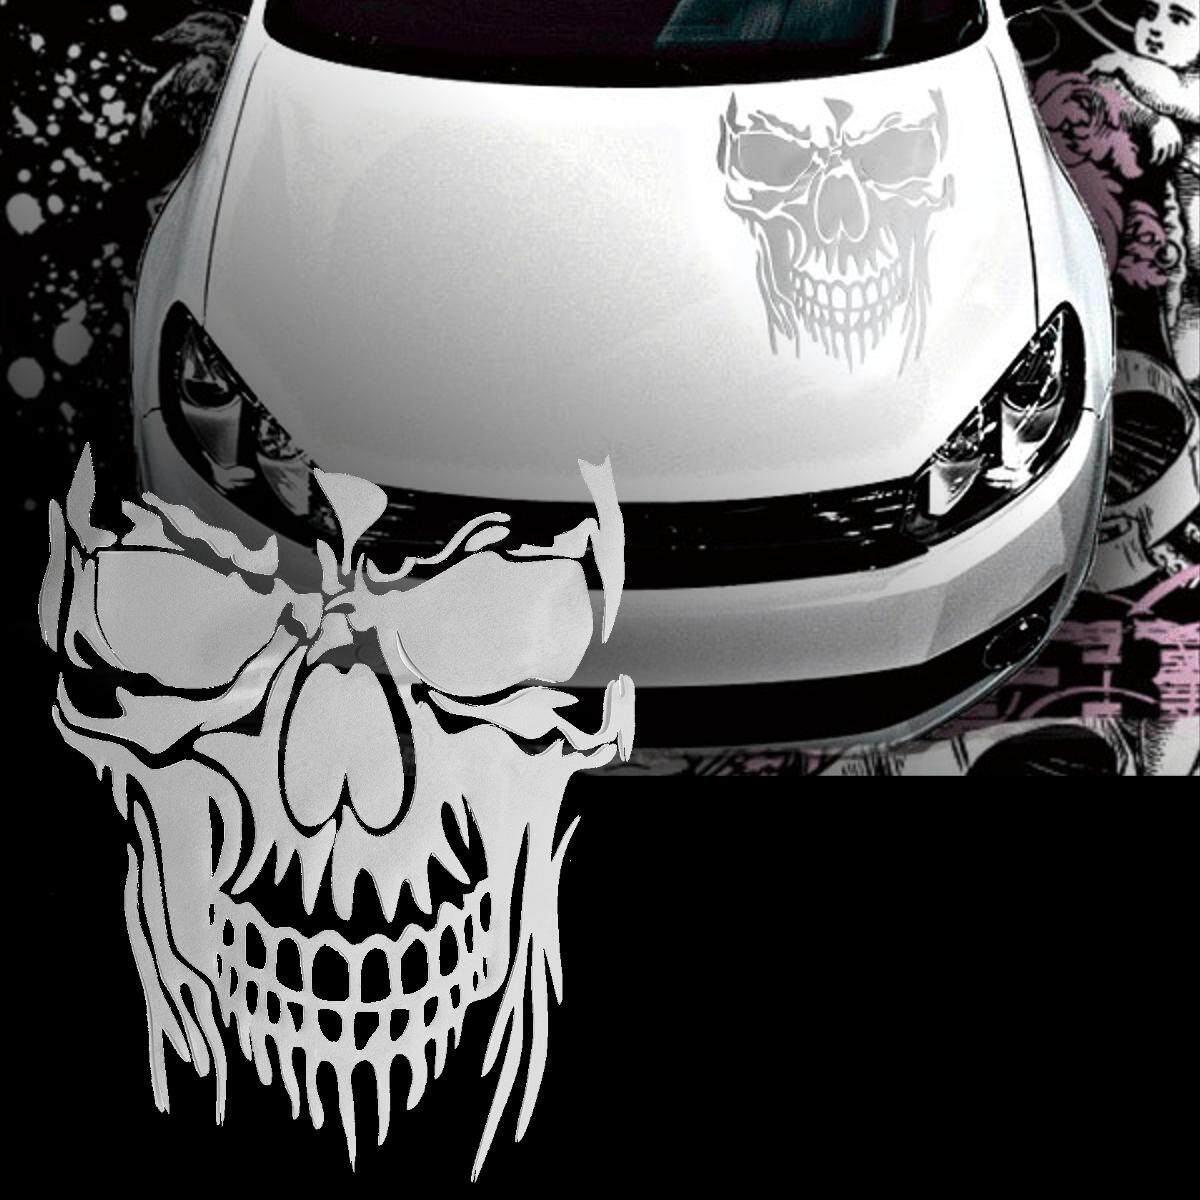 Product details of 【free shipping flash deal】car truck trailer tailgate window door hood decal sticker skull graphic vinyl